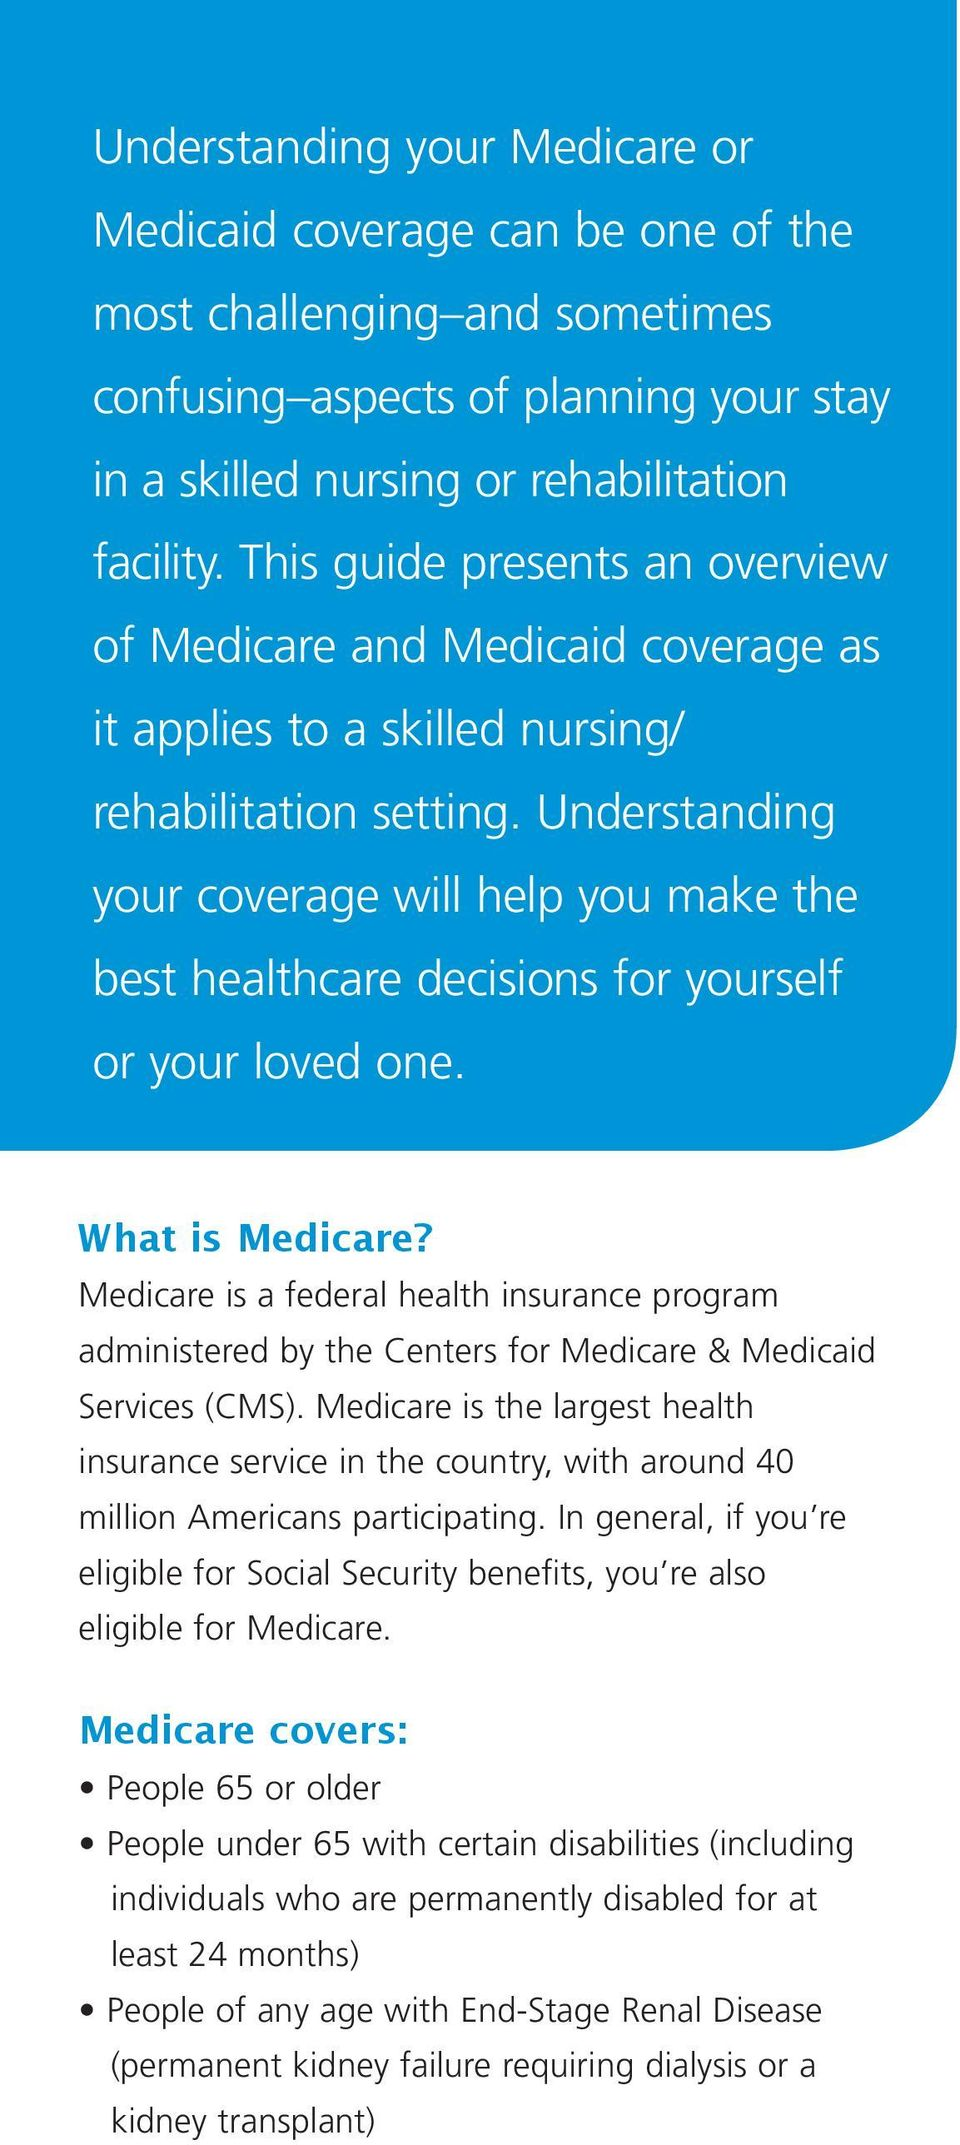 Understanding your coverage will help you make the best healthcare decisions for yourself or your loved one. What is Medicare?